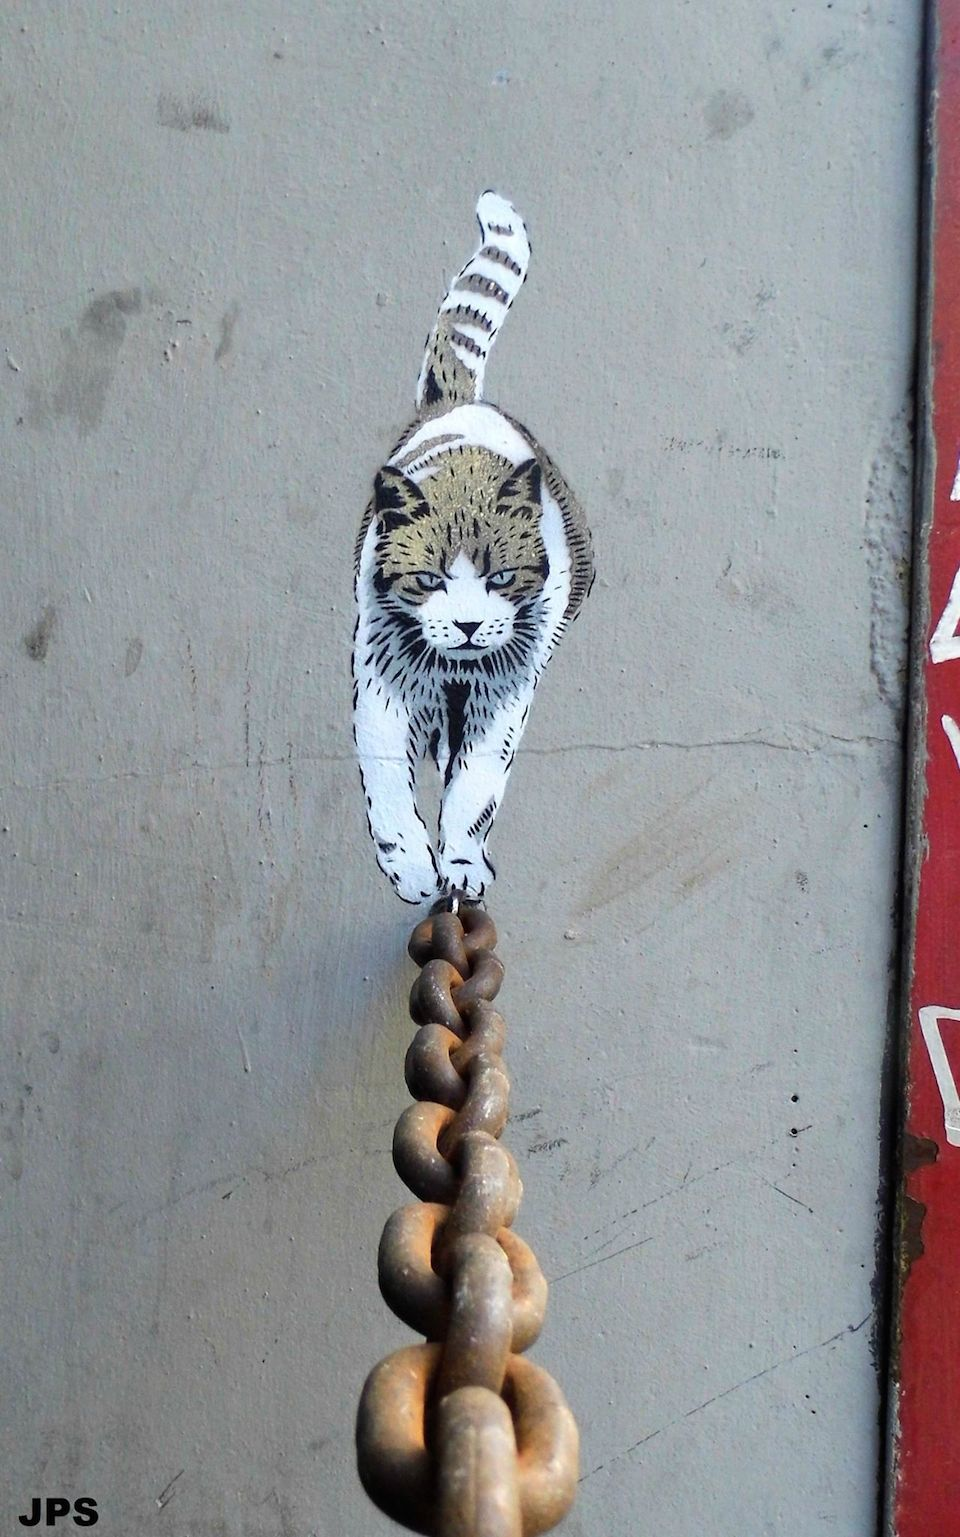 Street-Art-Cat-by-JPS-36756865